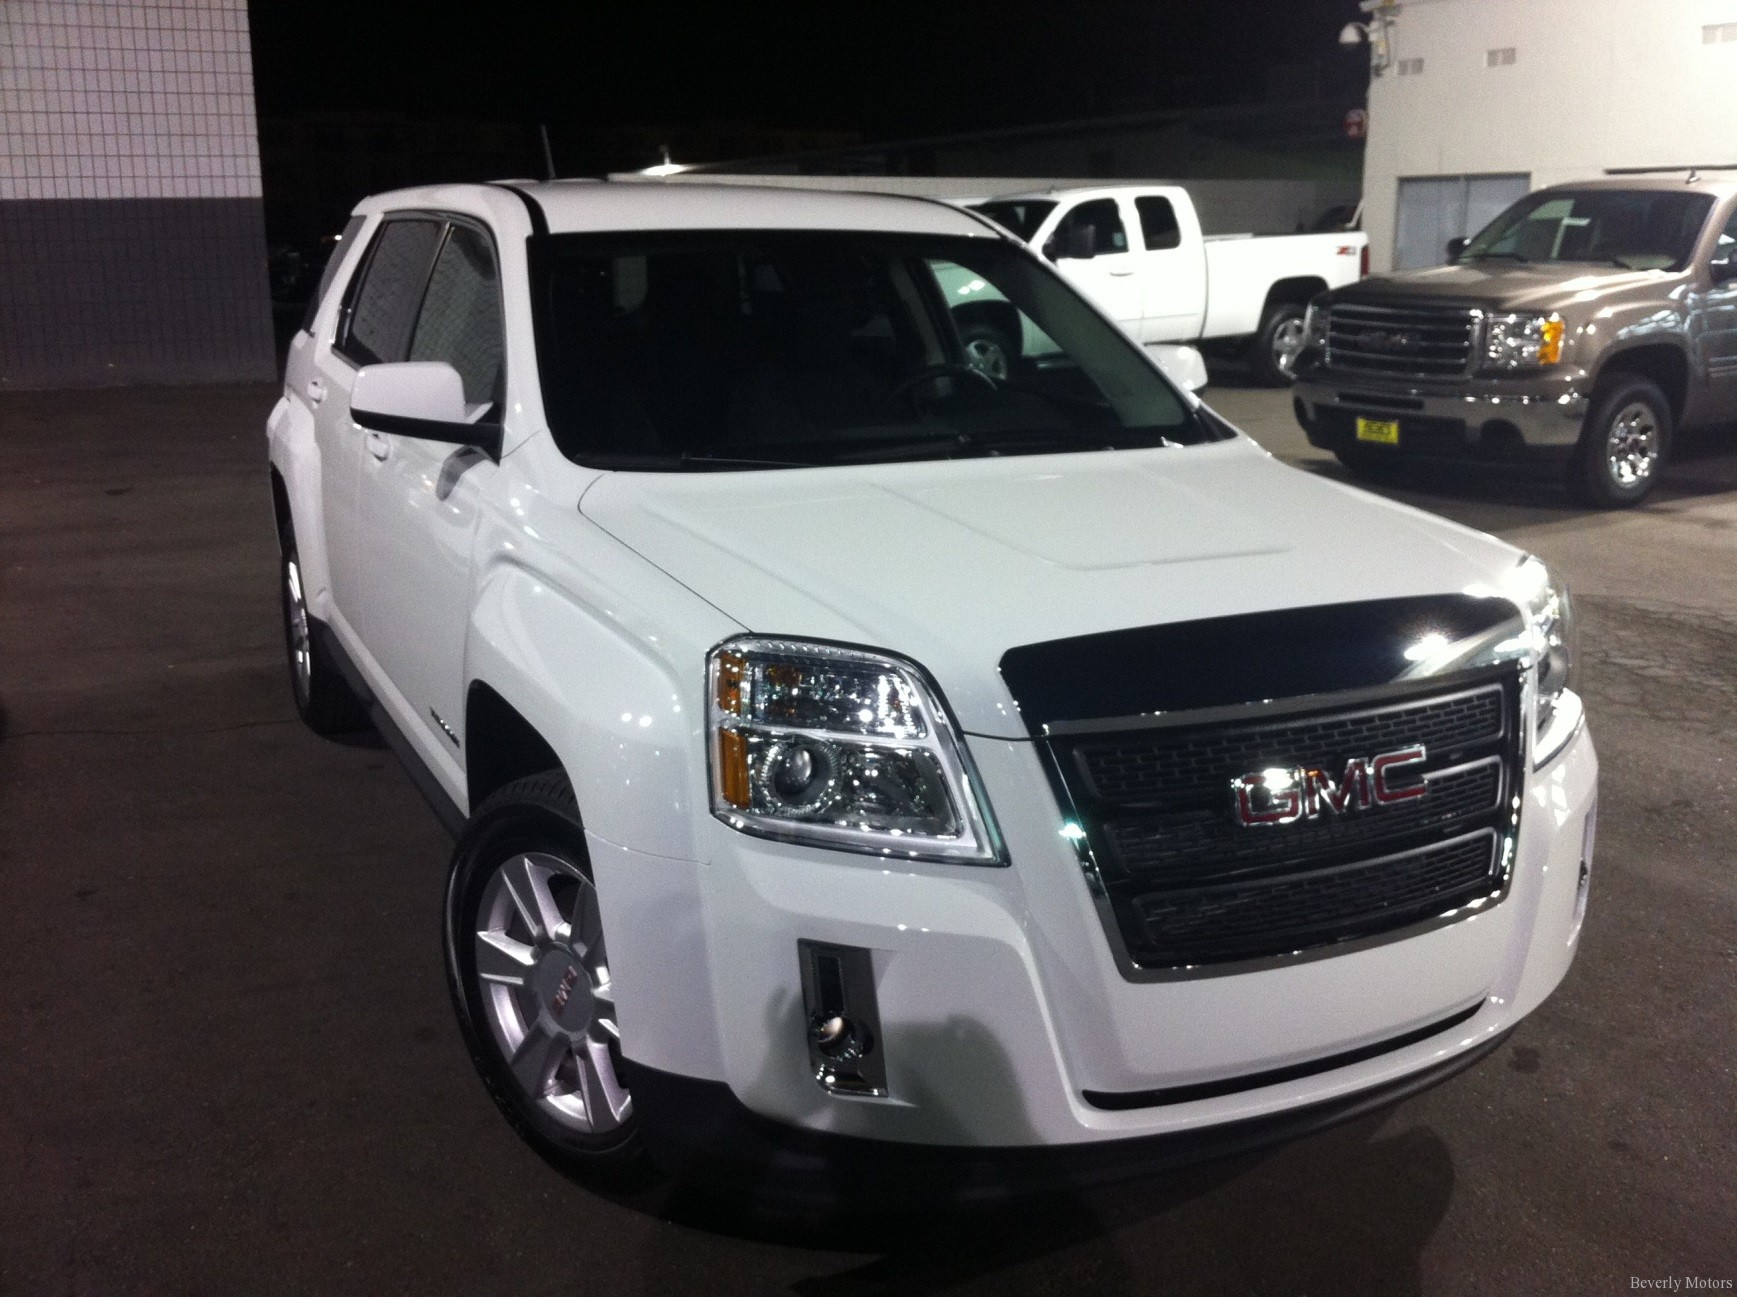 hammonton sale terrain in for new vehicle gmc nj photo vehiclesearchresults vehicles lease